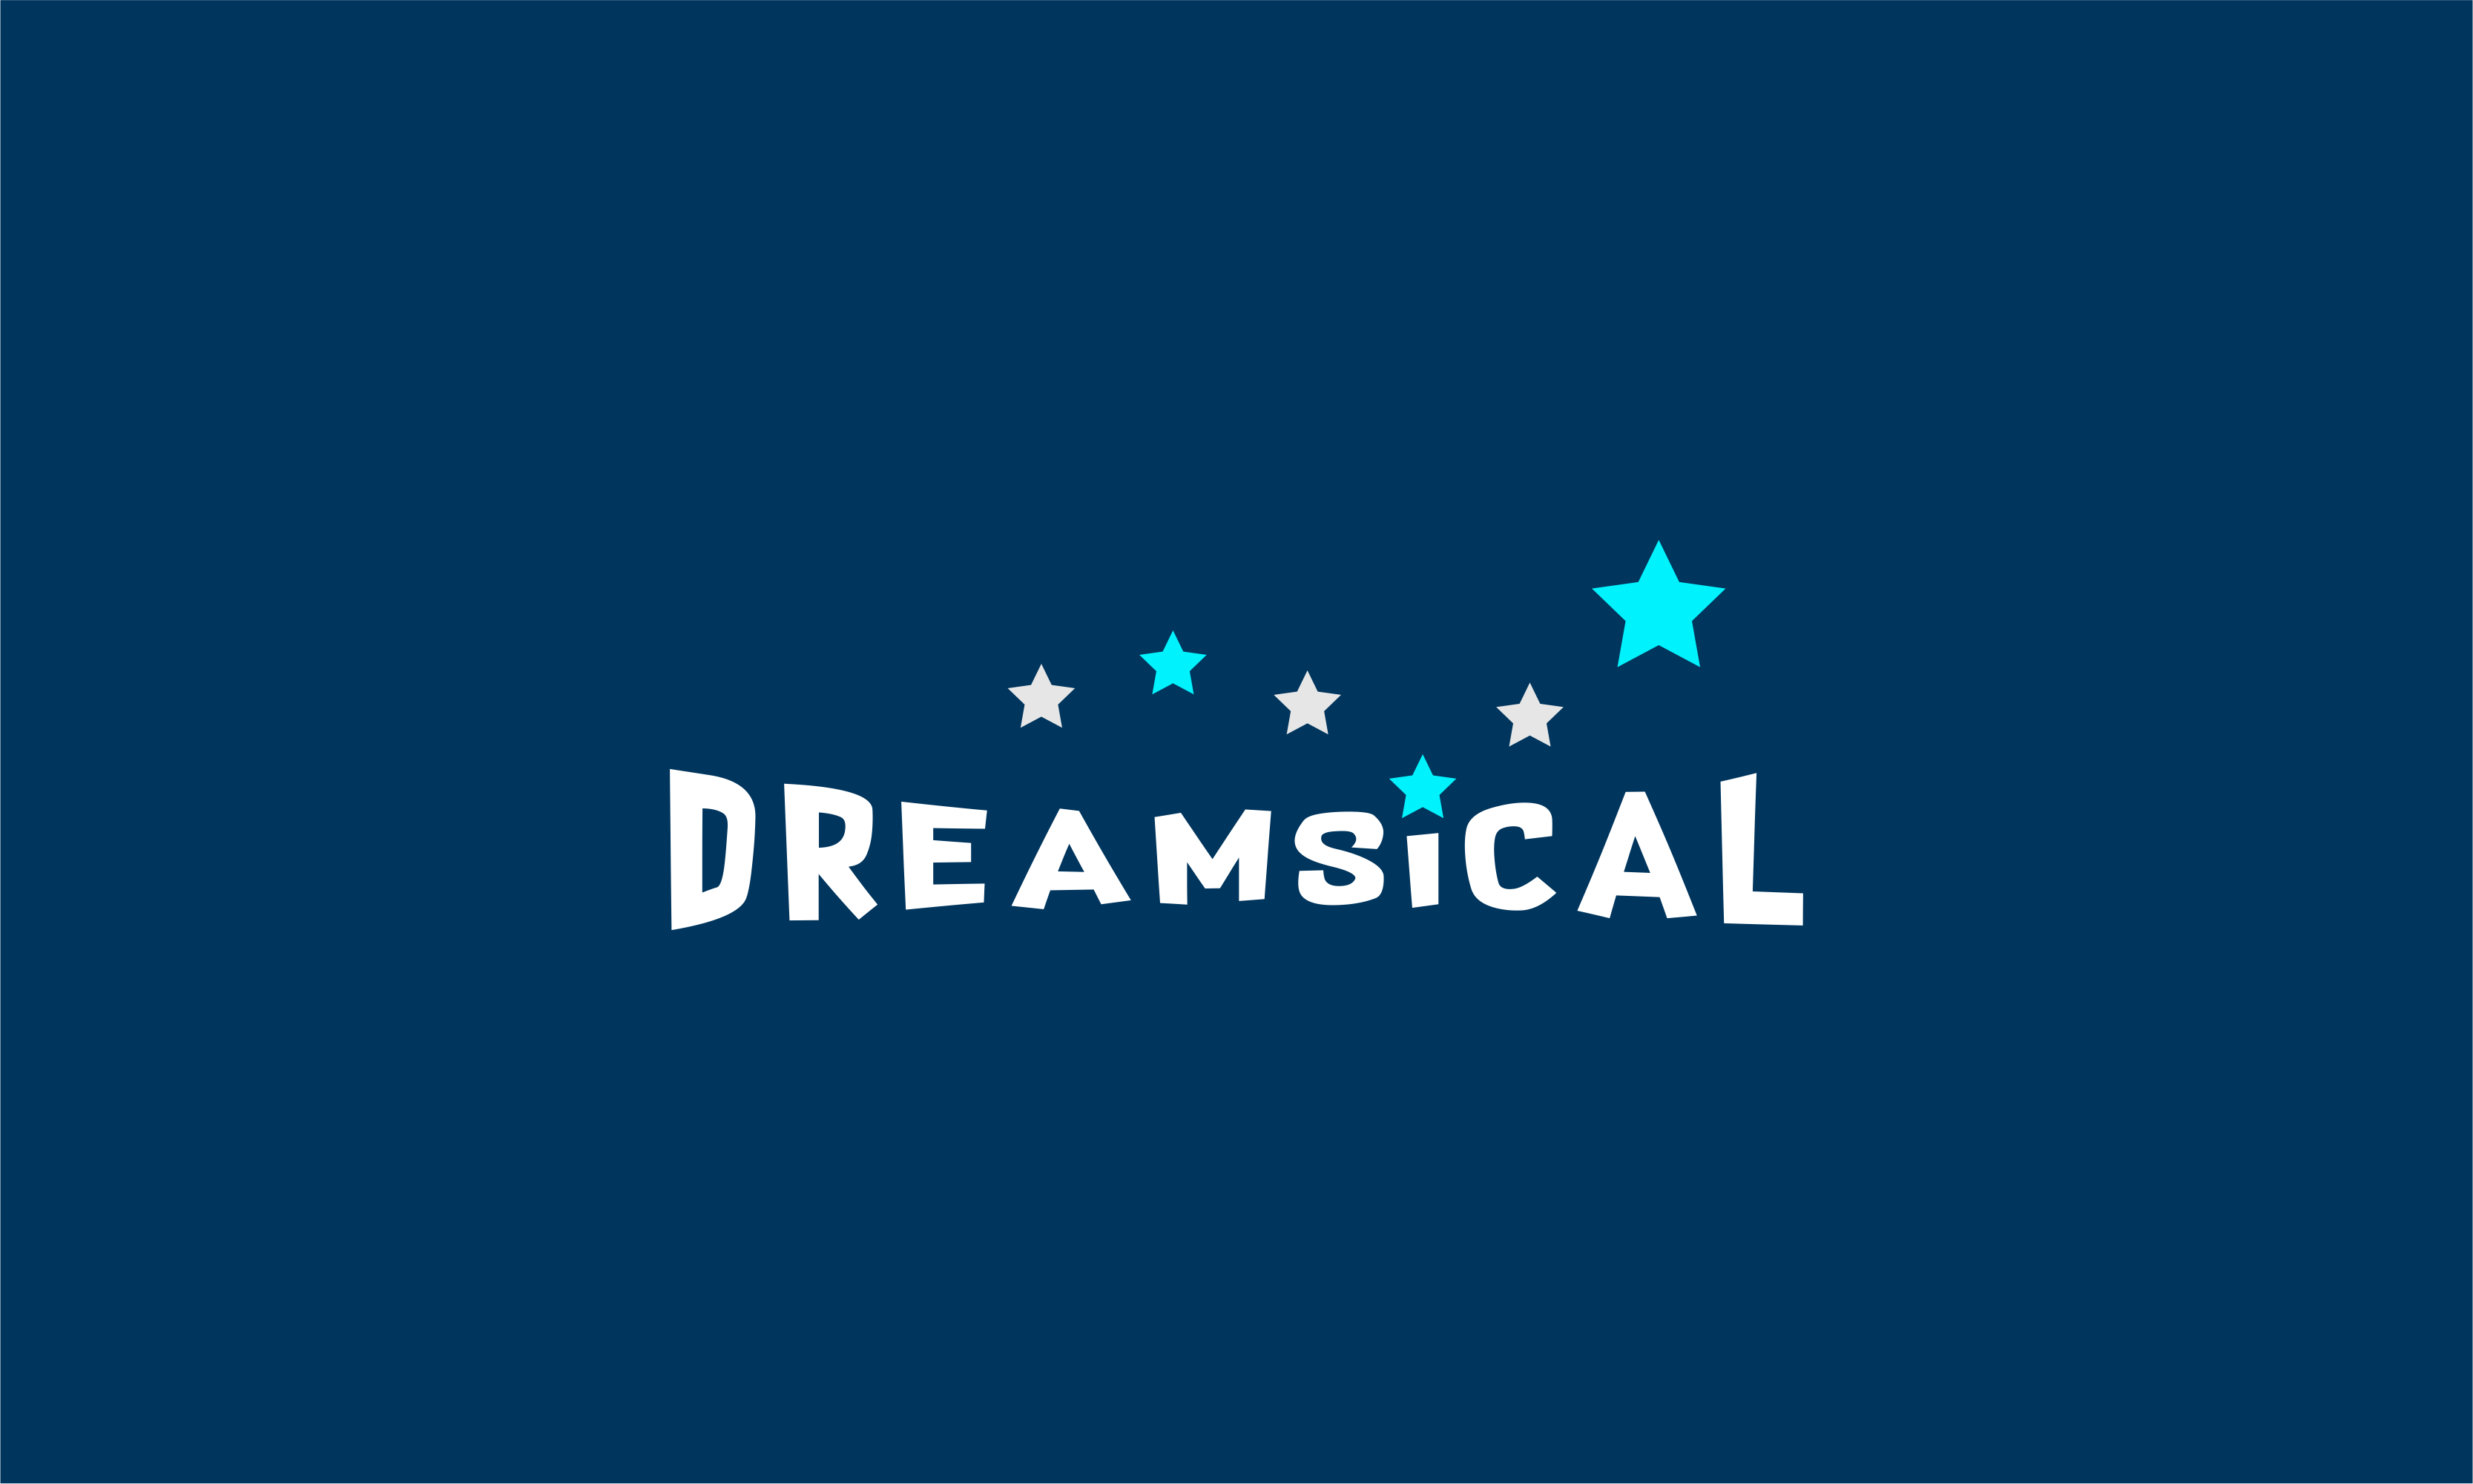 Dreamsical